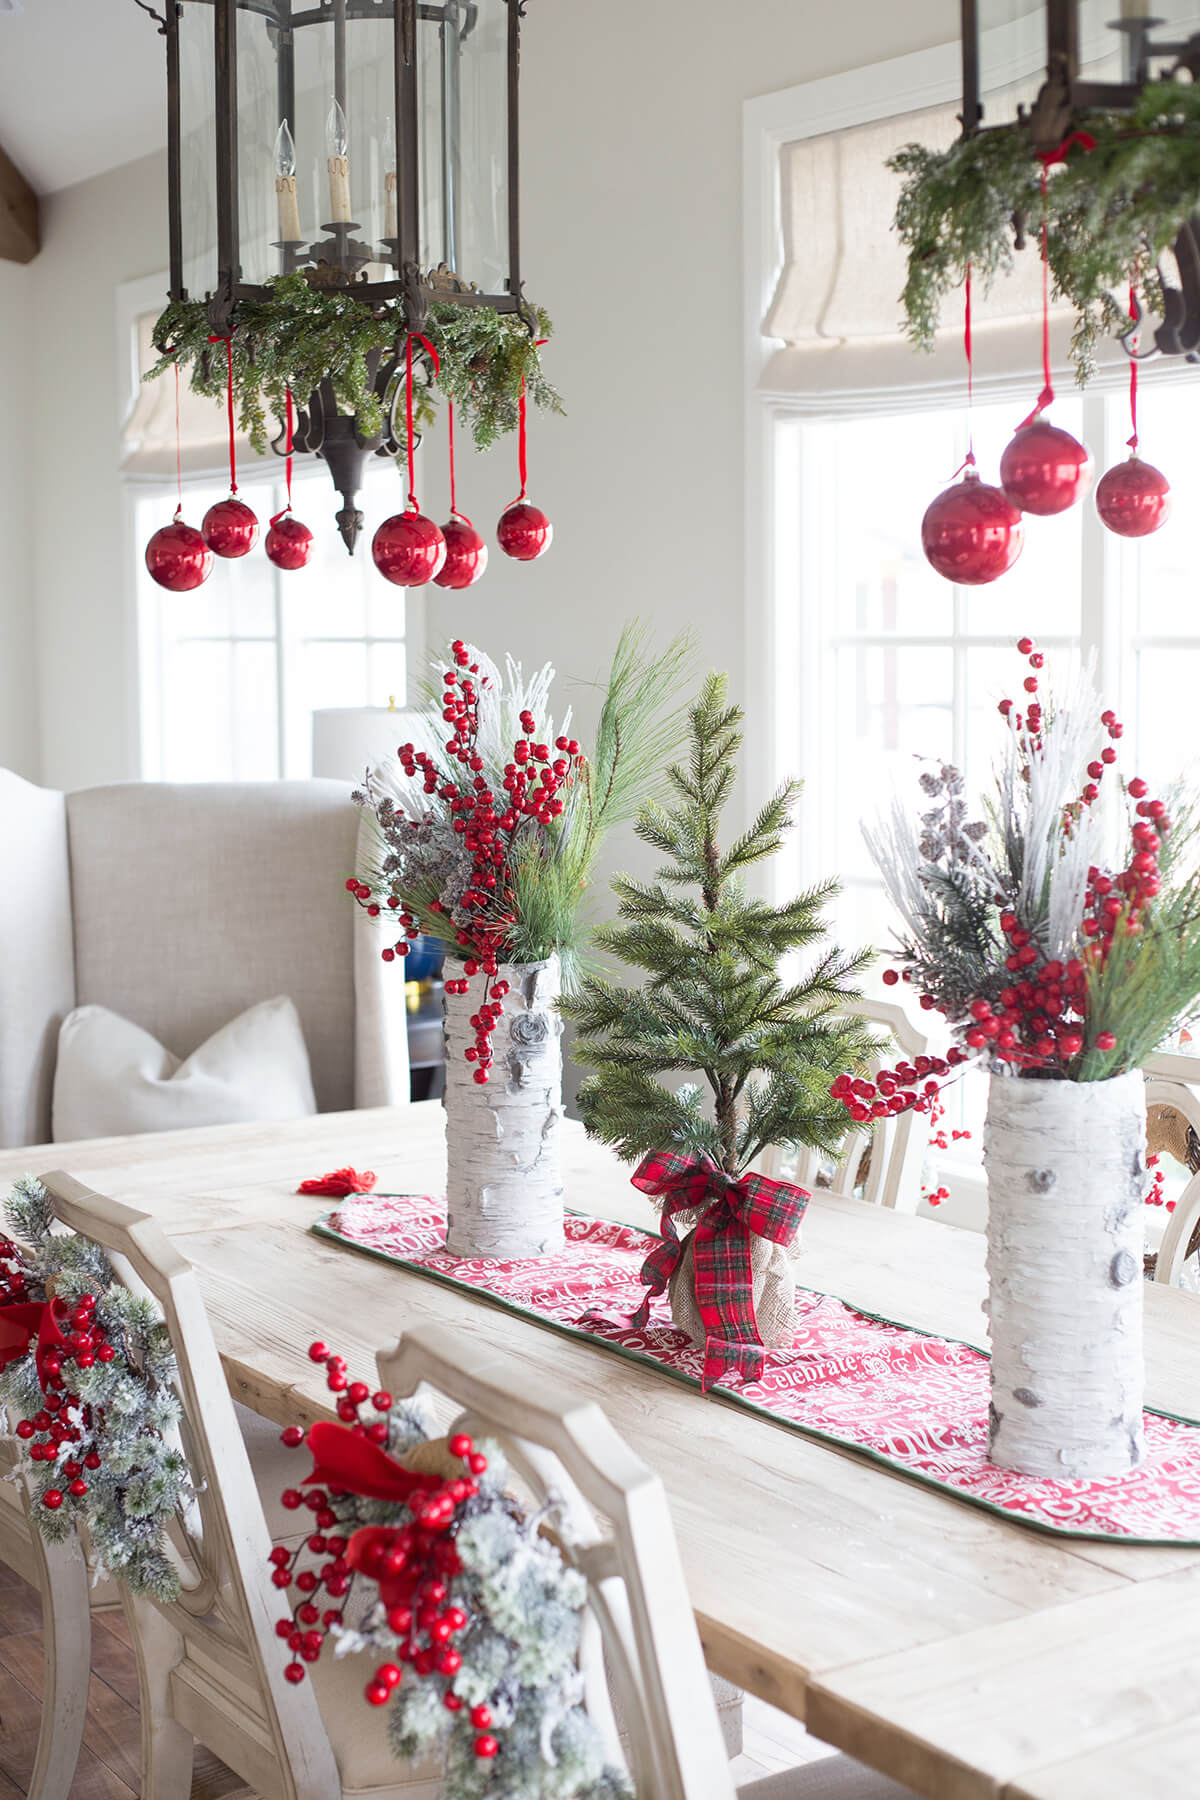 40 Best Red Christmas Decor Ideas and Designs for 2019